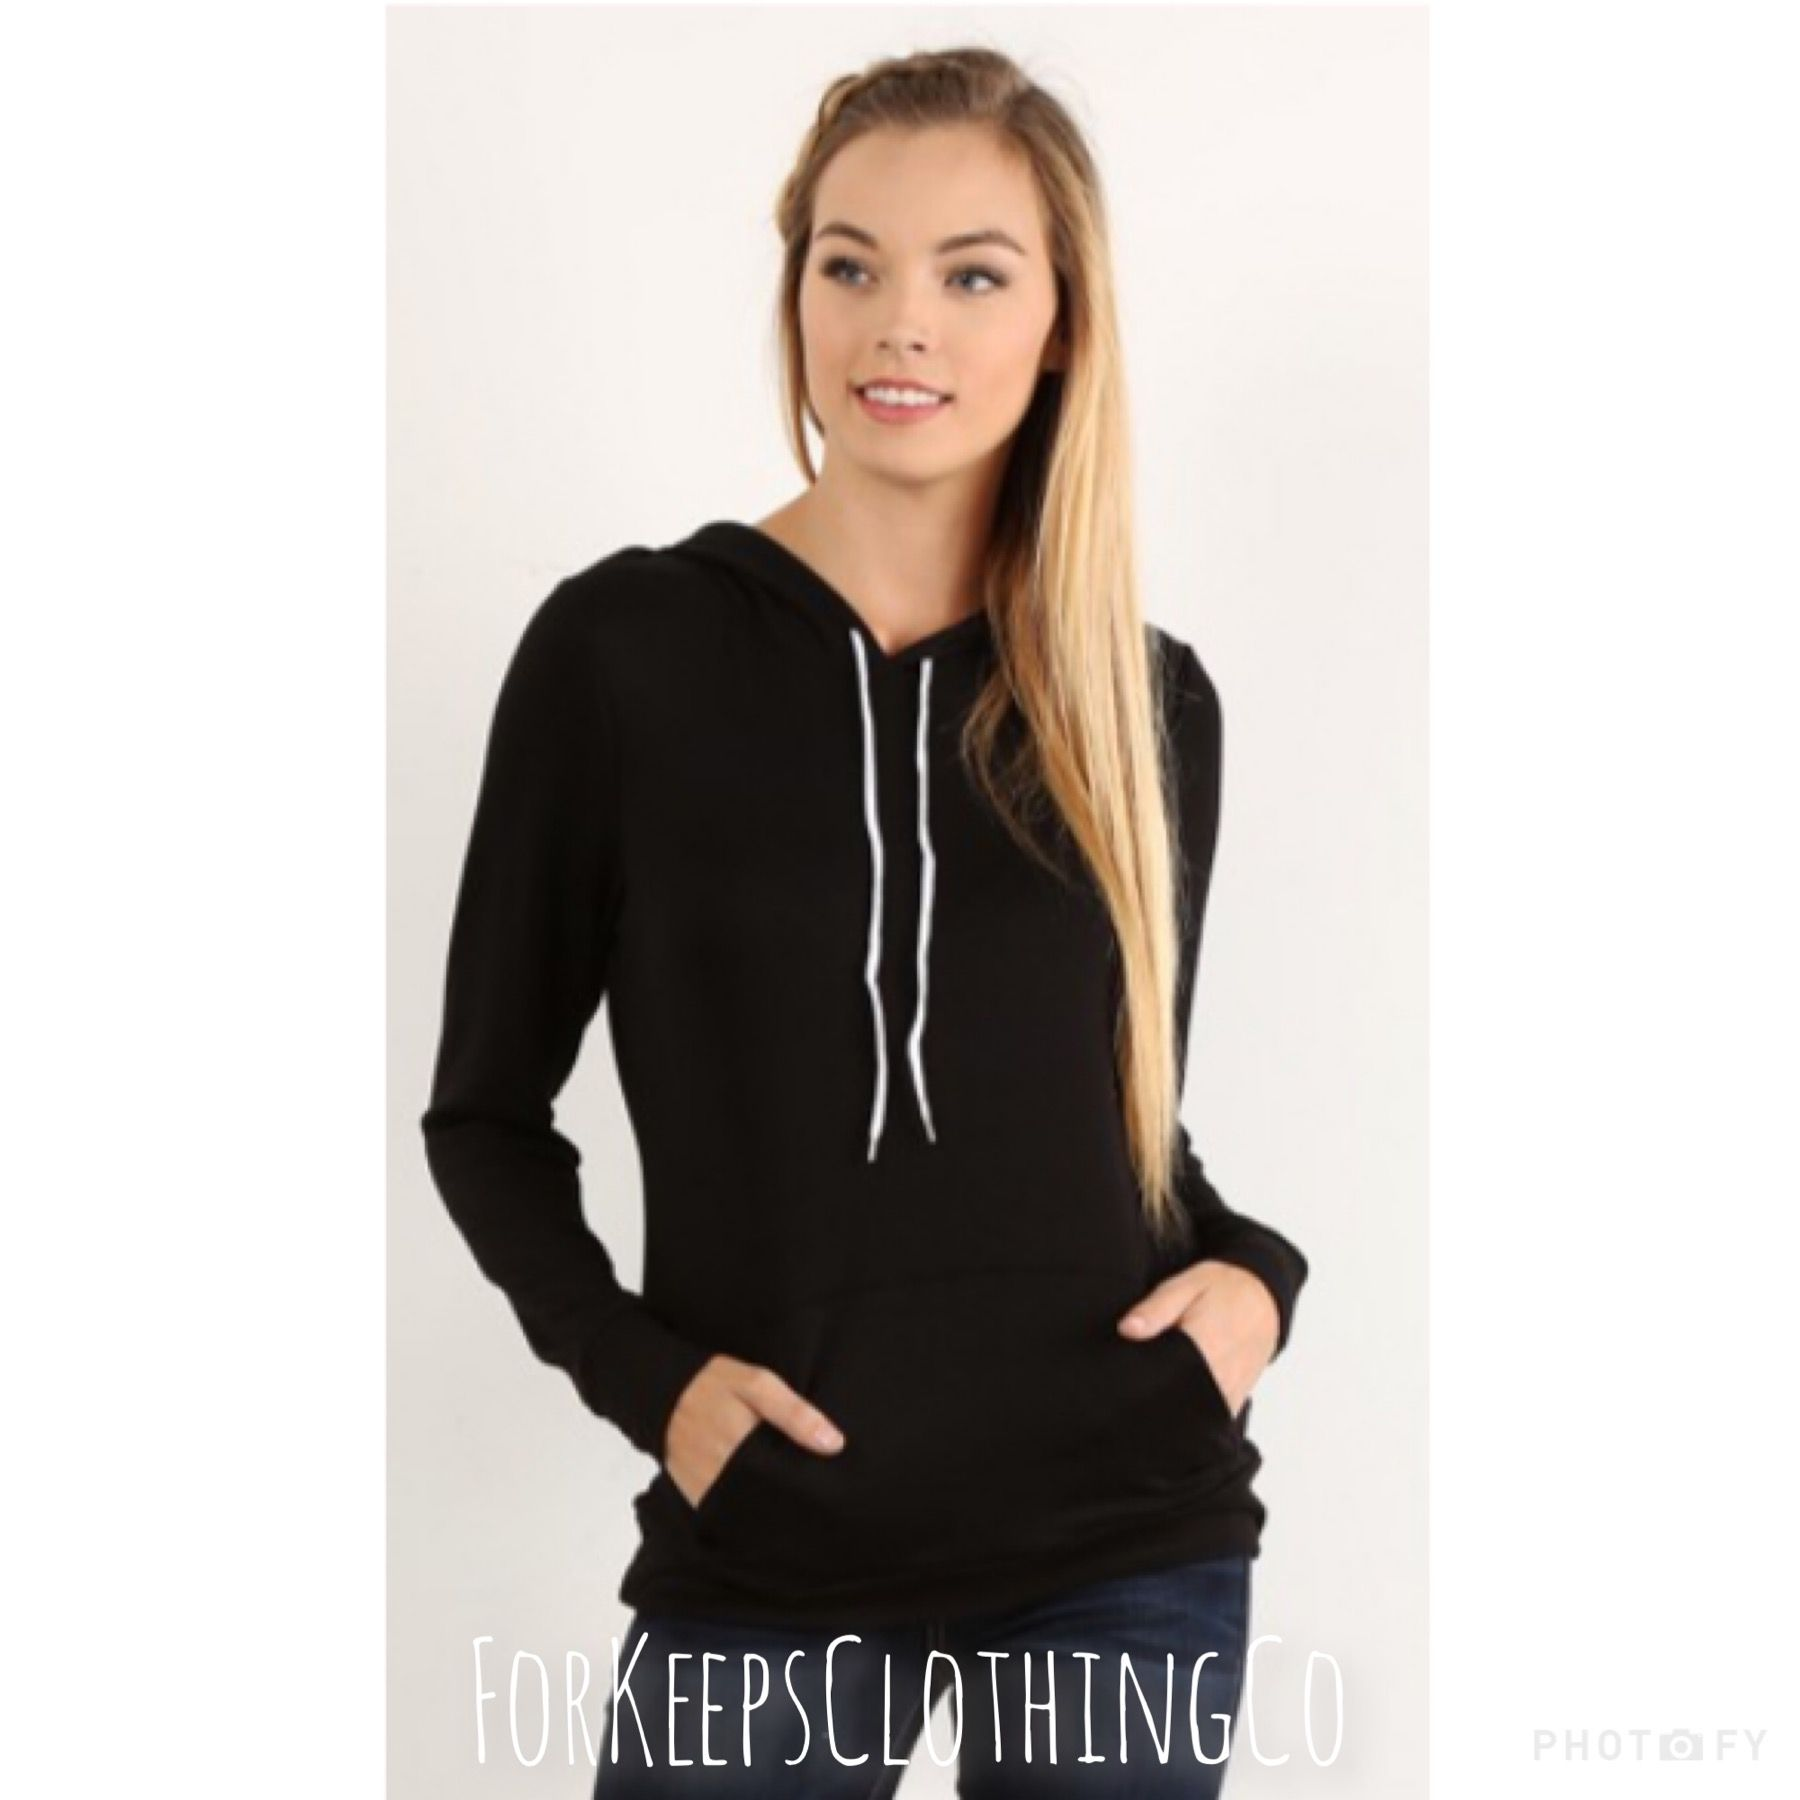 Only $20.50 SHIPPED!! Fast and Free Shipping in the US!! Int'l shipping offered, rates apply.    Made in the USA - Soft jersey material - French Terry - Poly/Rayon/Spandex    S, M, L.  | Shop this product here: http://spreesy.com/Forkeepsclothingco/226 | Shop all of our products at http://spreesy.com/Forkeepsclothingco    | Pinterest selling powered by Spreesy.com